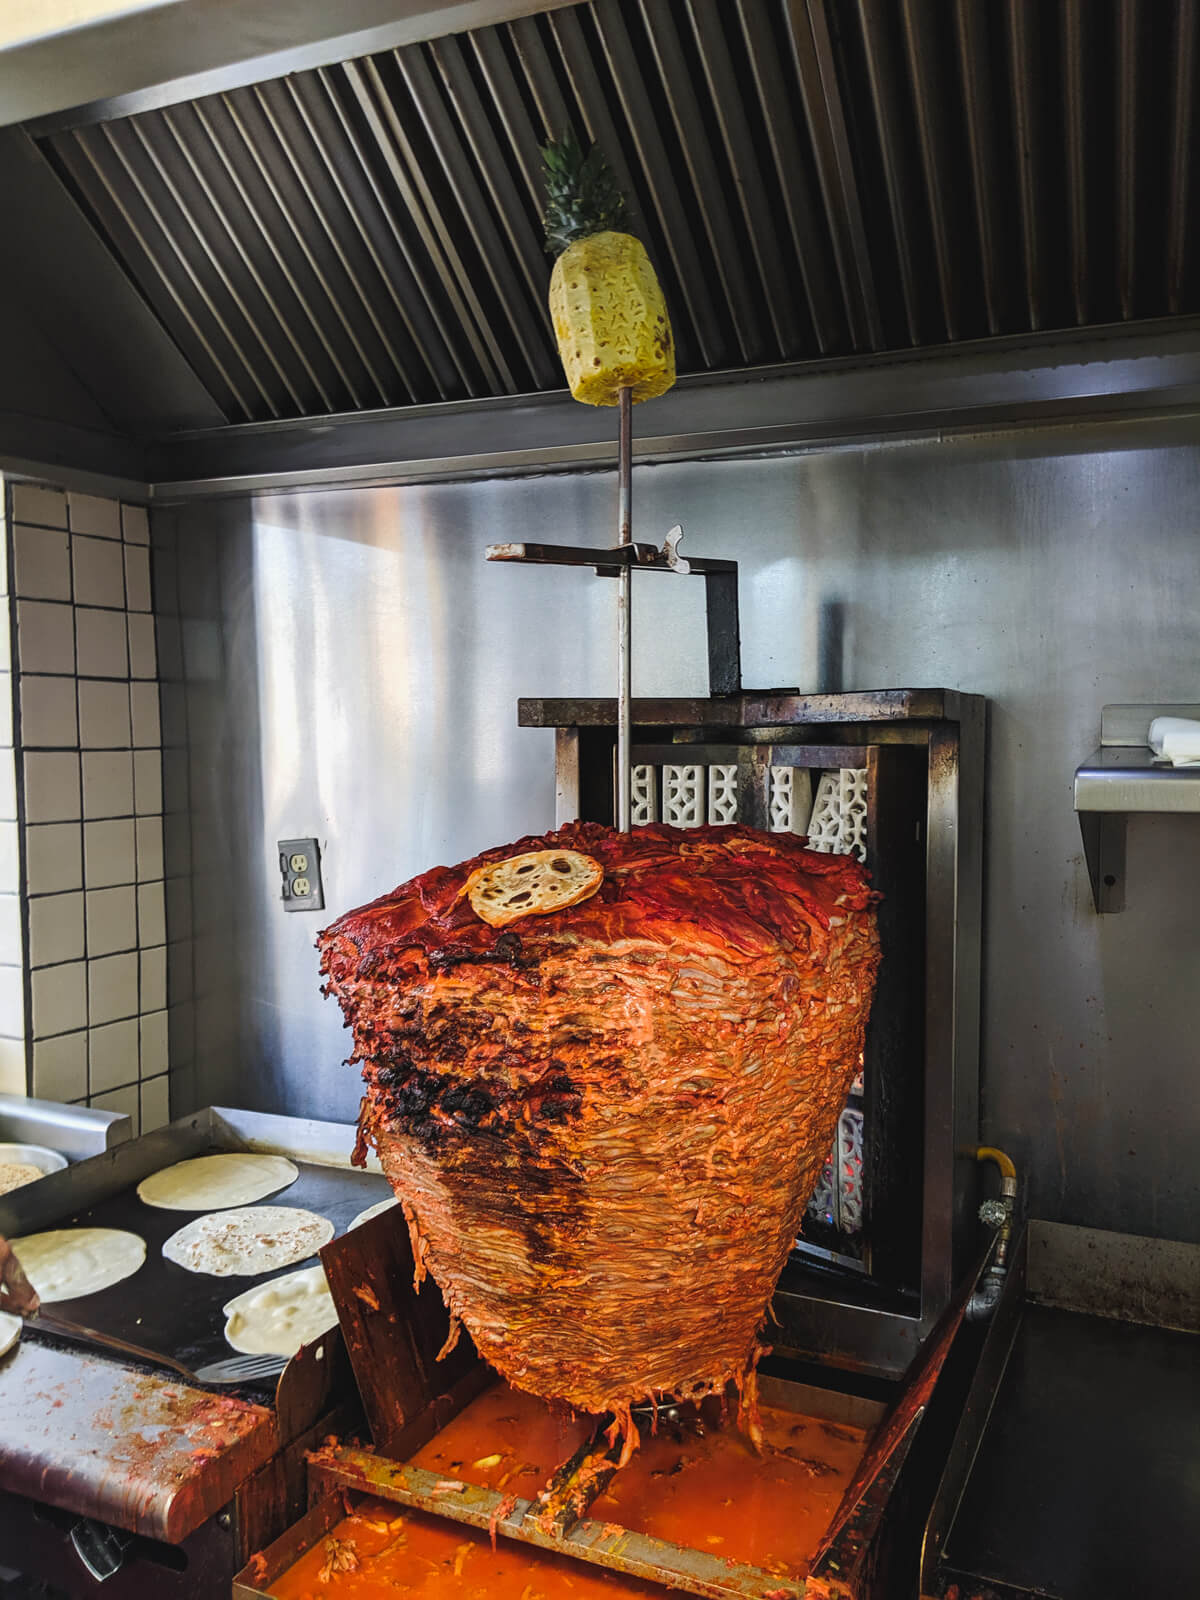 This is a trompo, the spit-roasted pork that becomes a taco al pastor. This particular (massive) trompo is at Orinoco.